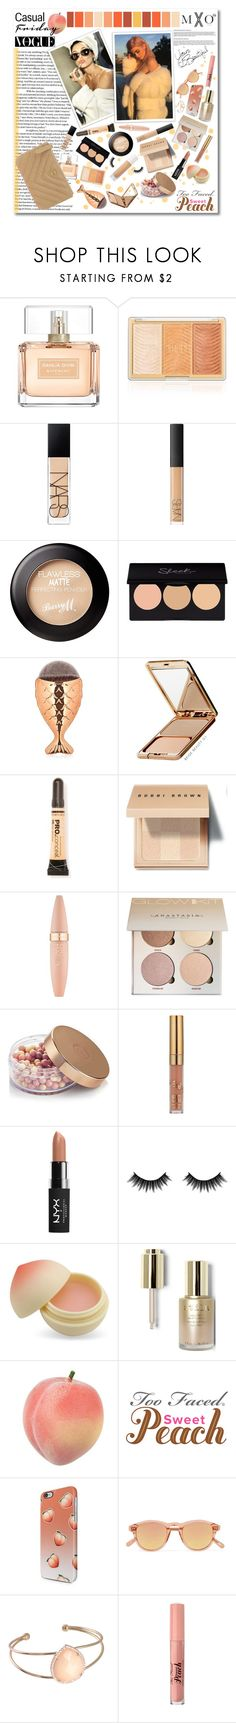 """CASUAL FRIDAY"" by mxogirl ❤ liked on Polyvore featuring beauty, Givenchy, NARS Cosmetics, Puma, Napoleon Perdis, L.A. Girl, Bobbi Brown Cosmetics, Maybelline, The Body Shop and NYX"